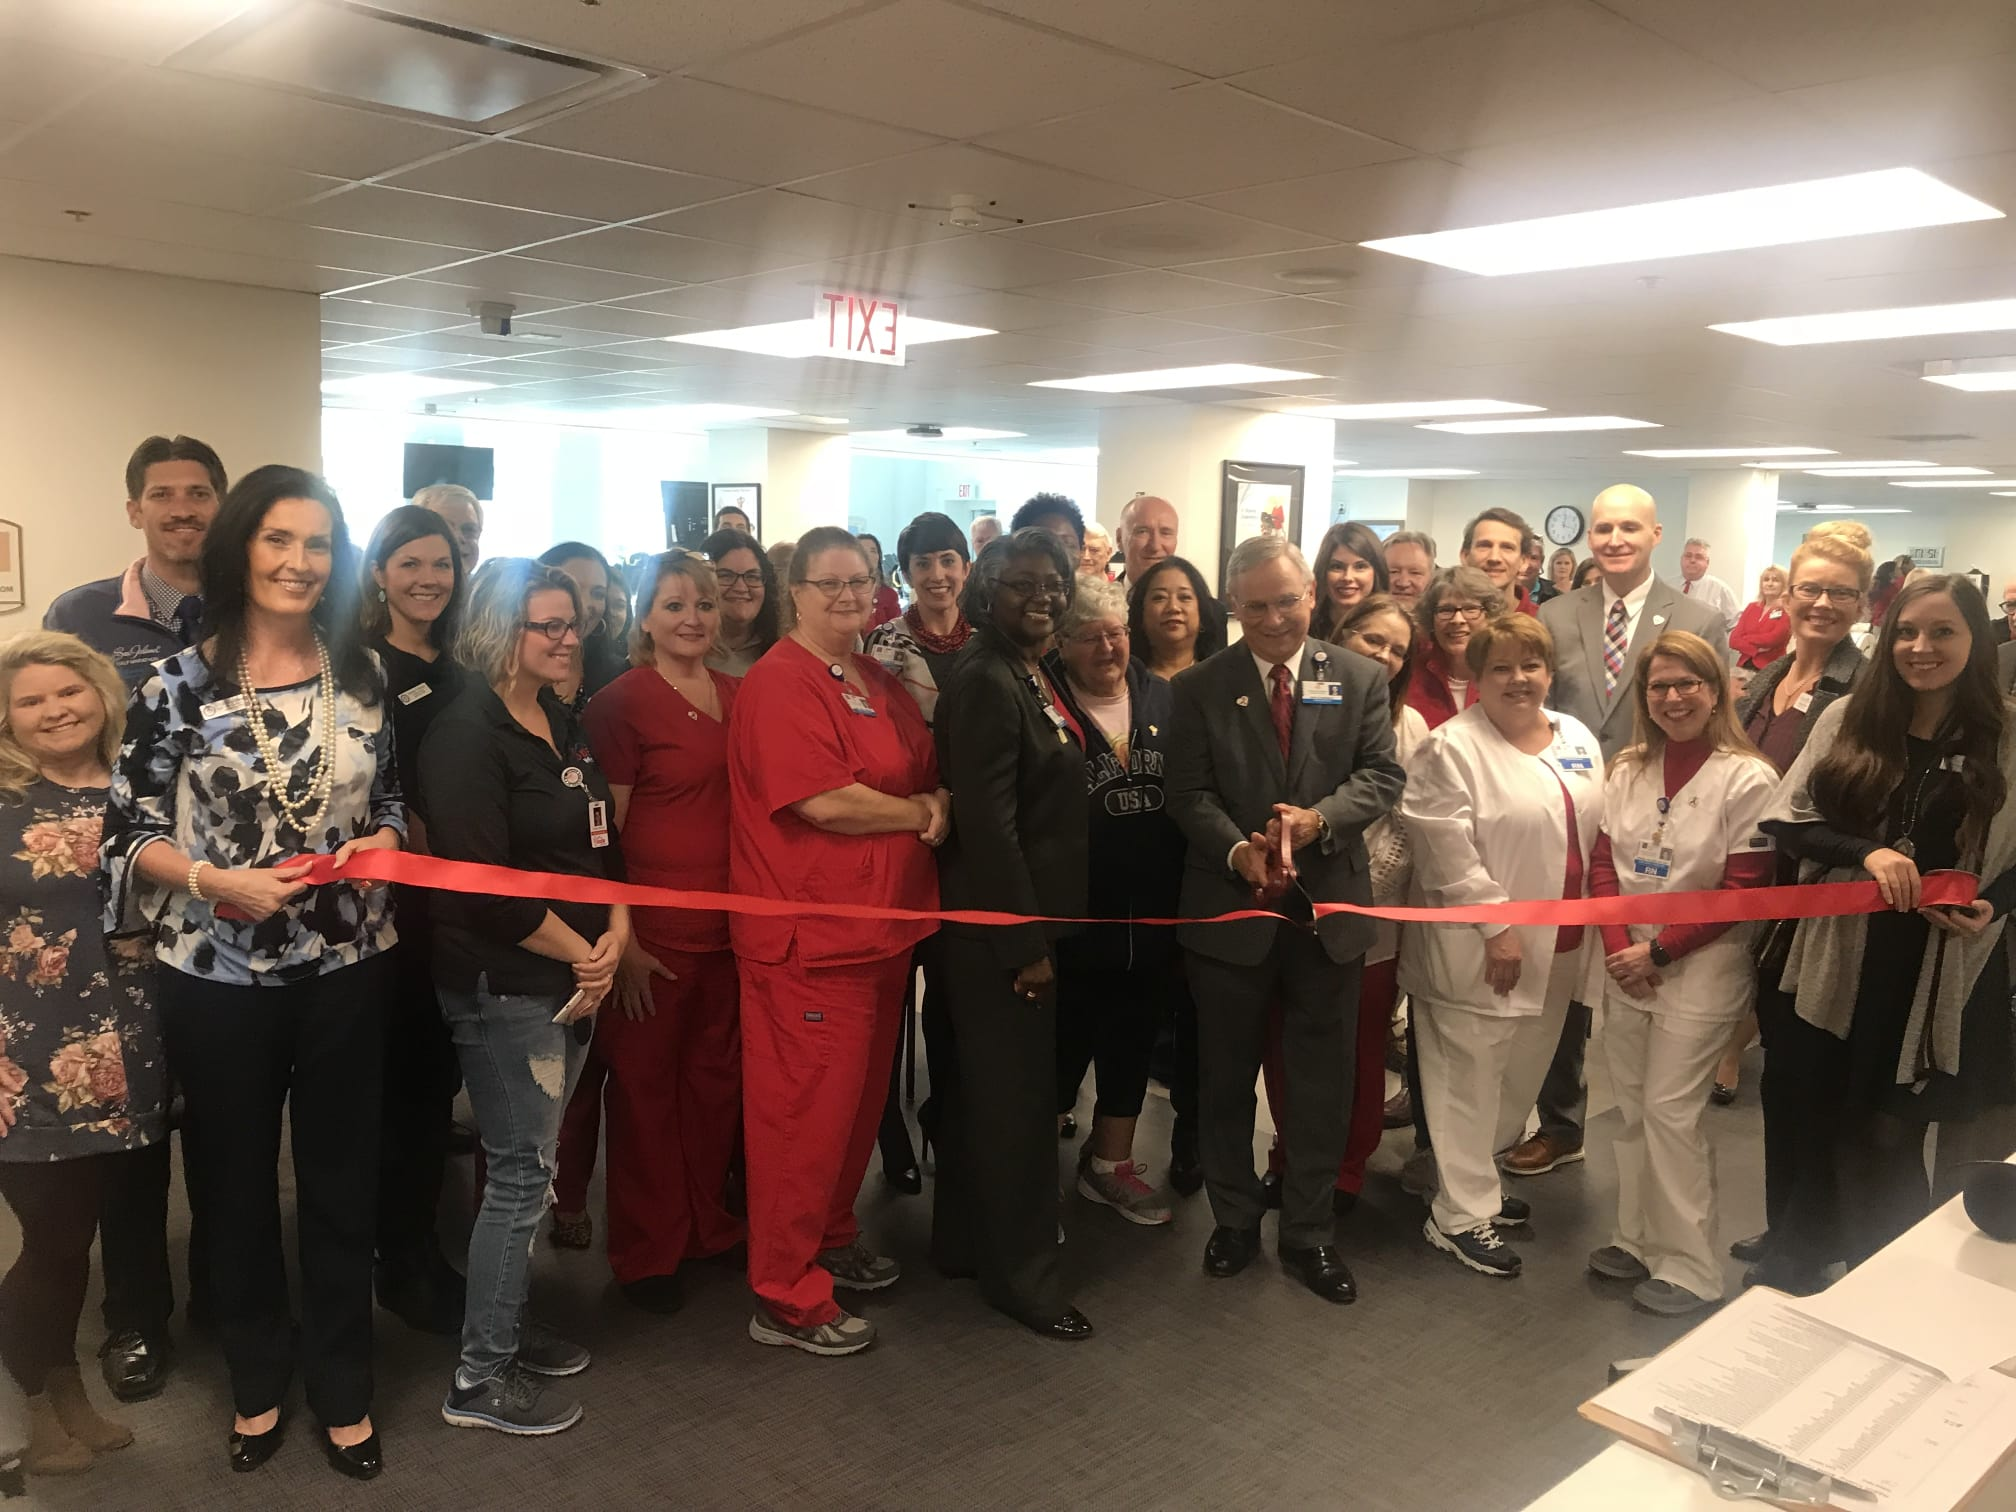 SGHS-ribbon-cutting-02-02-18-w2016.jpg